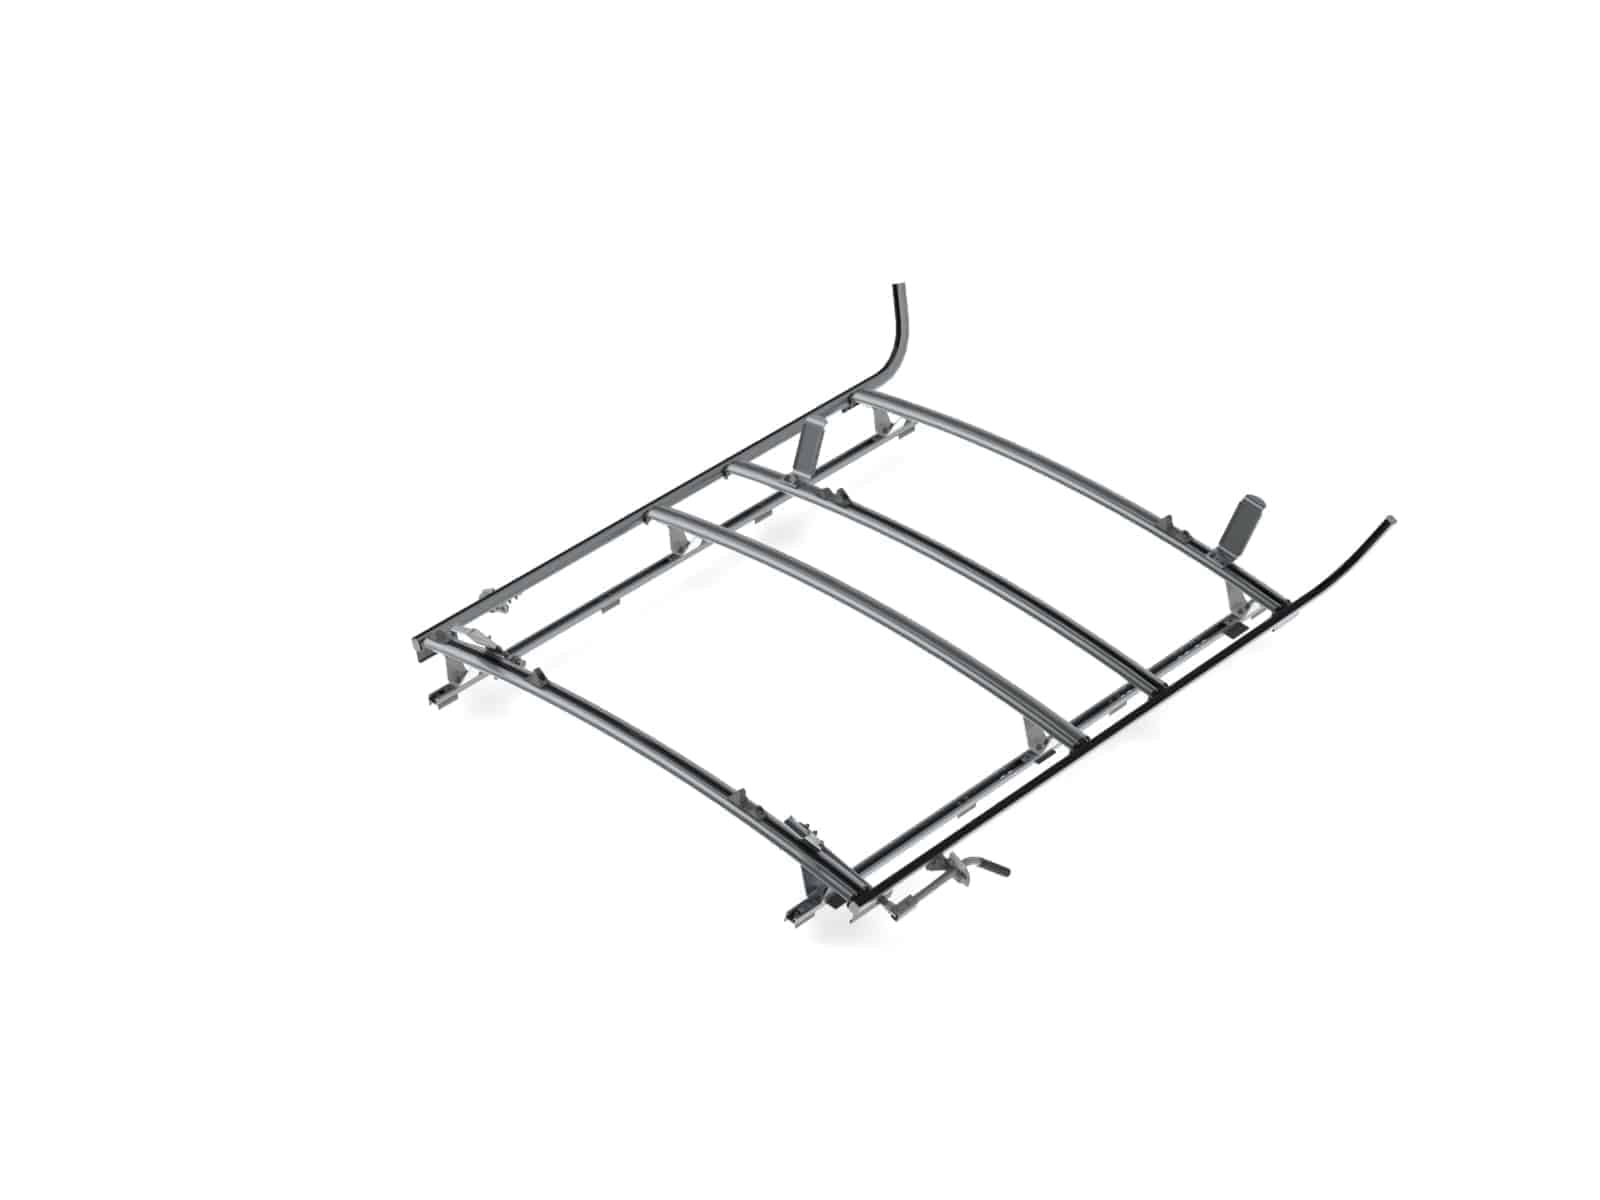 Cargo Rack For Vans Aluminum 3 Bar Ford E Series moreover Accessoirs further Lfs Toros Yamas further 162285043230 as well Brake Lathe Parts Breakdown For Accuturn Model 8922 Wiring Diagram. on ford ranger ph